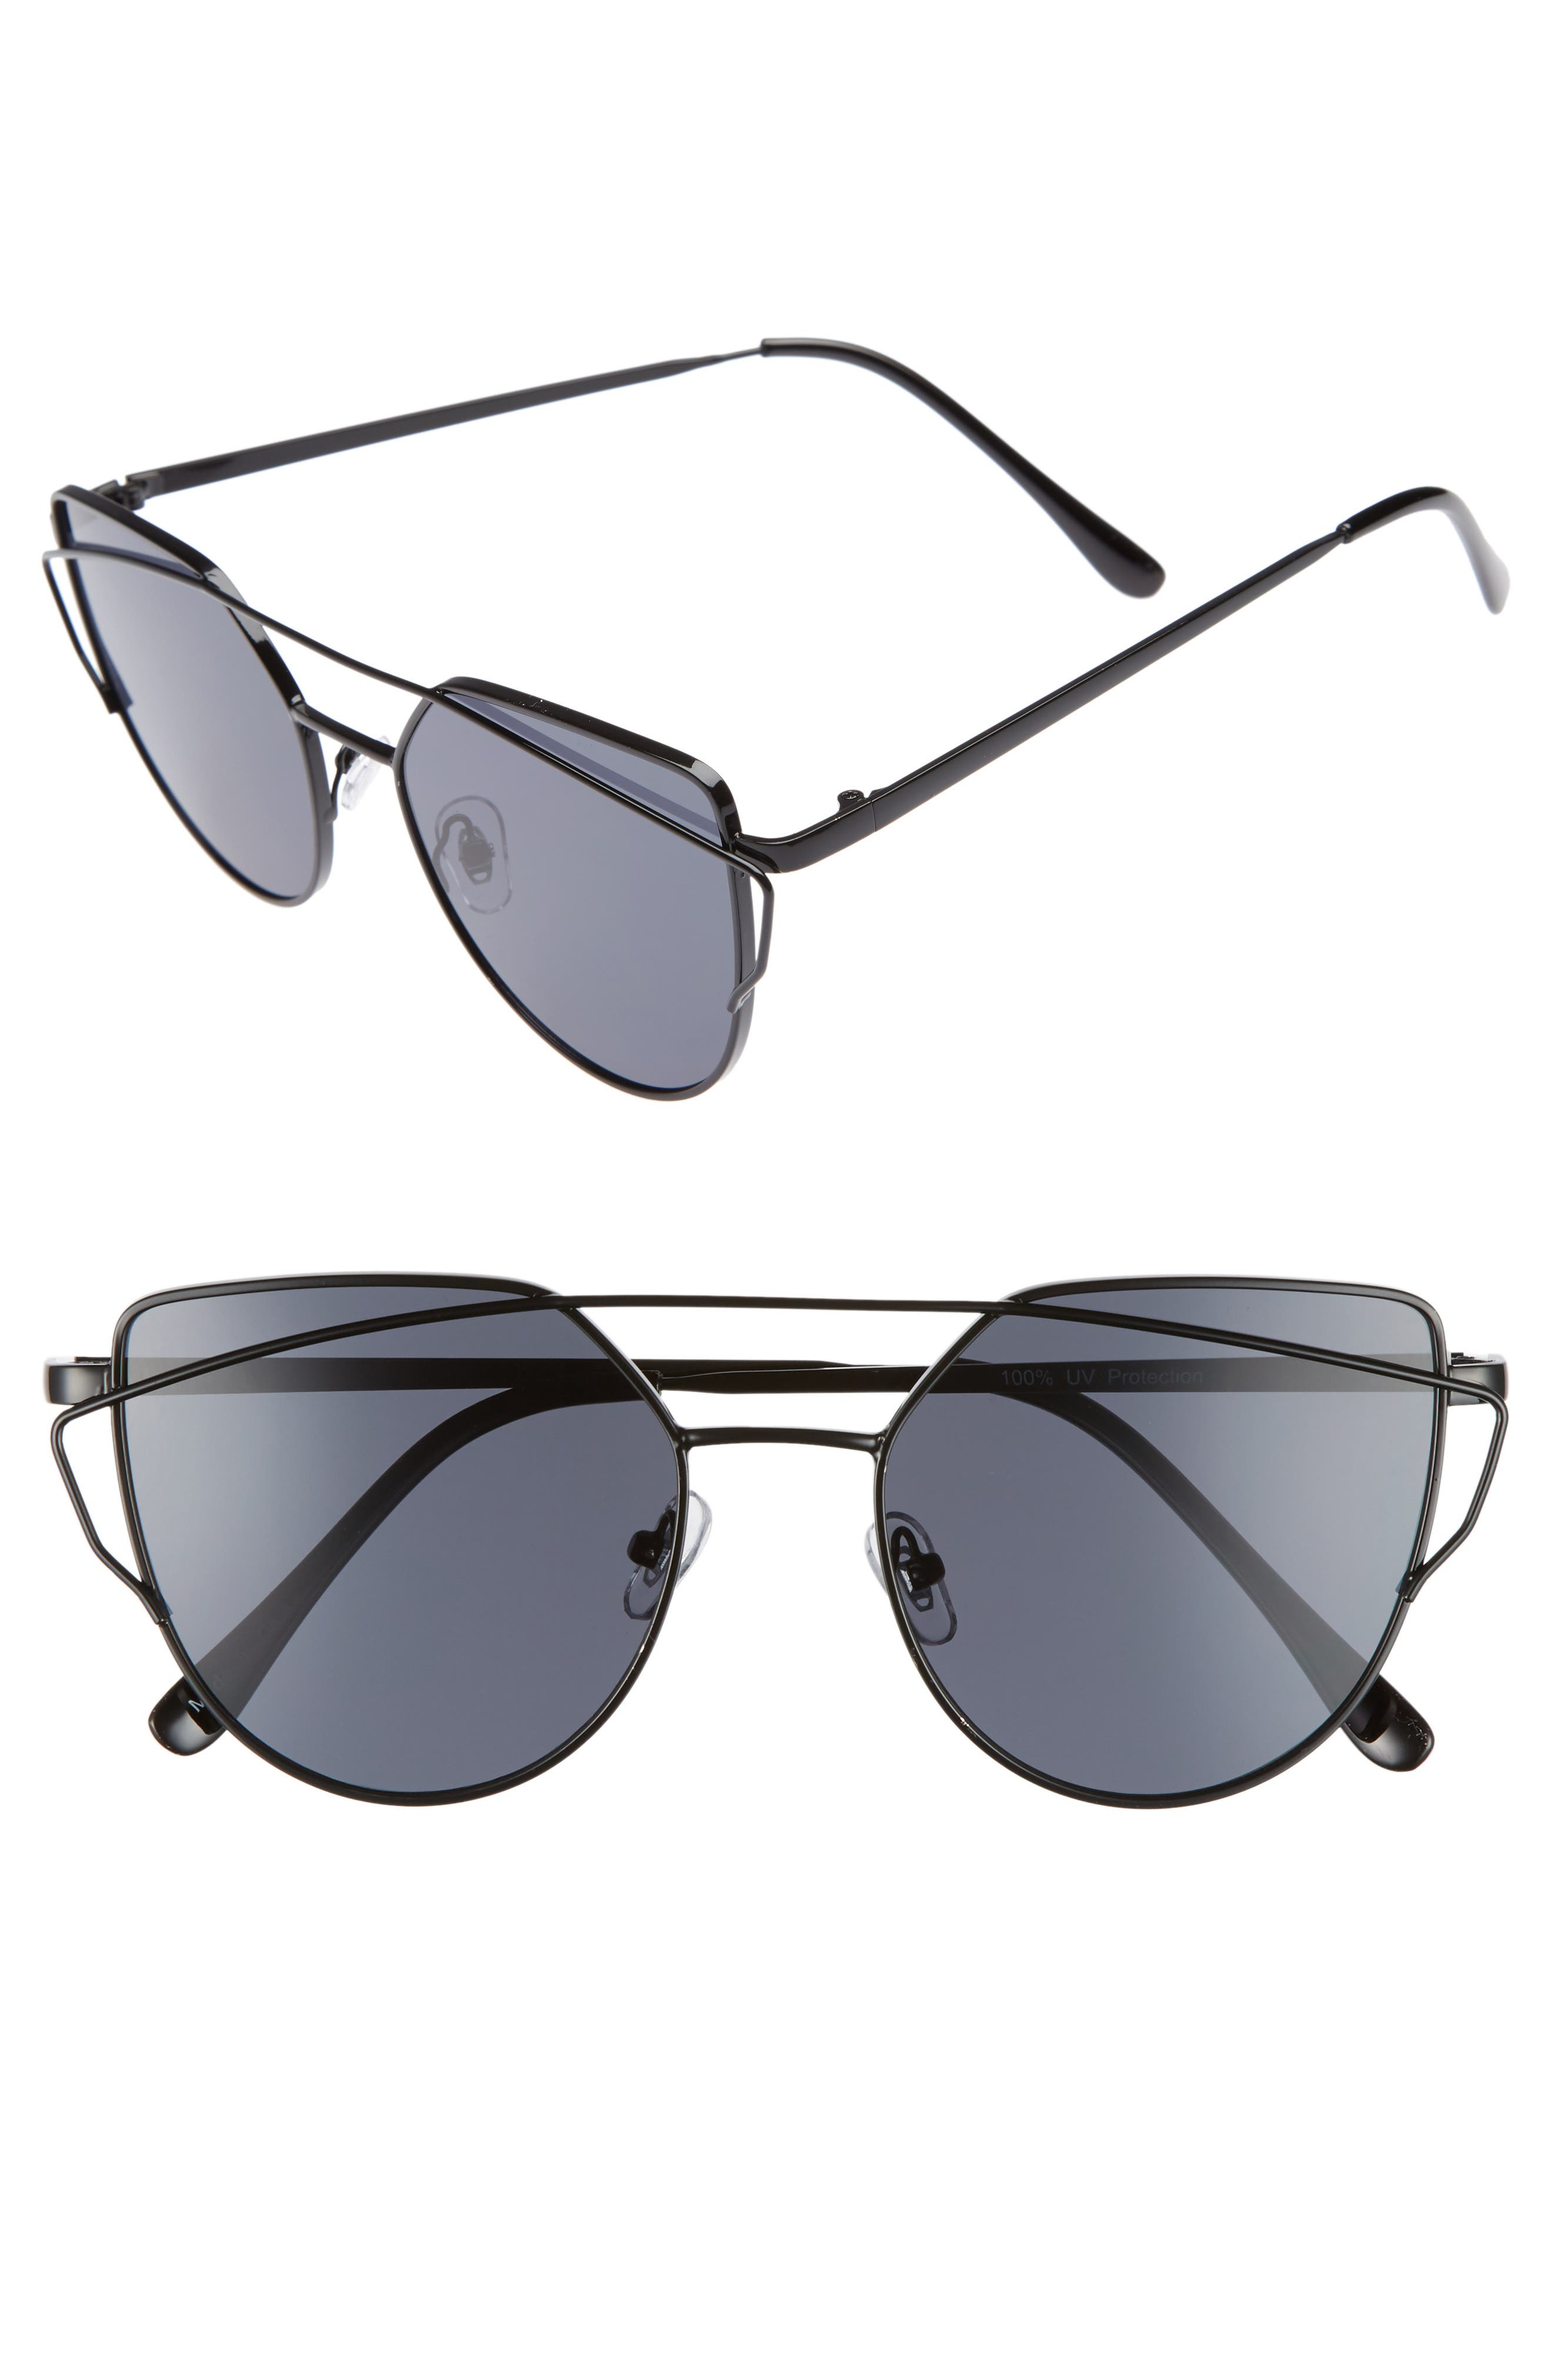 51mm Thin Brow Angular Aviator Sunglasses,                         Main,                         color, Black/ Black